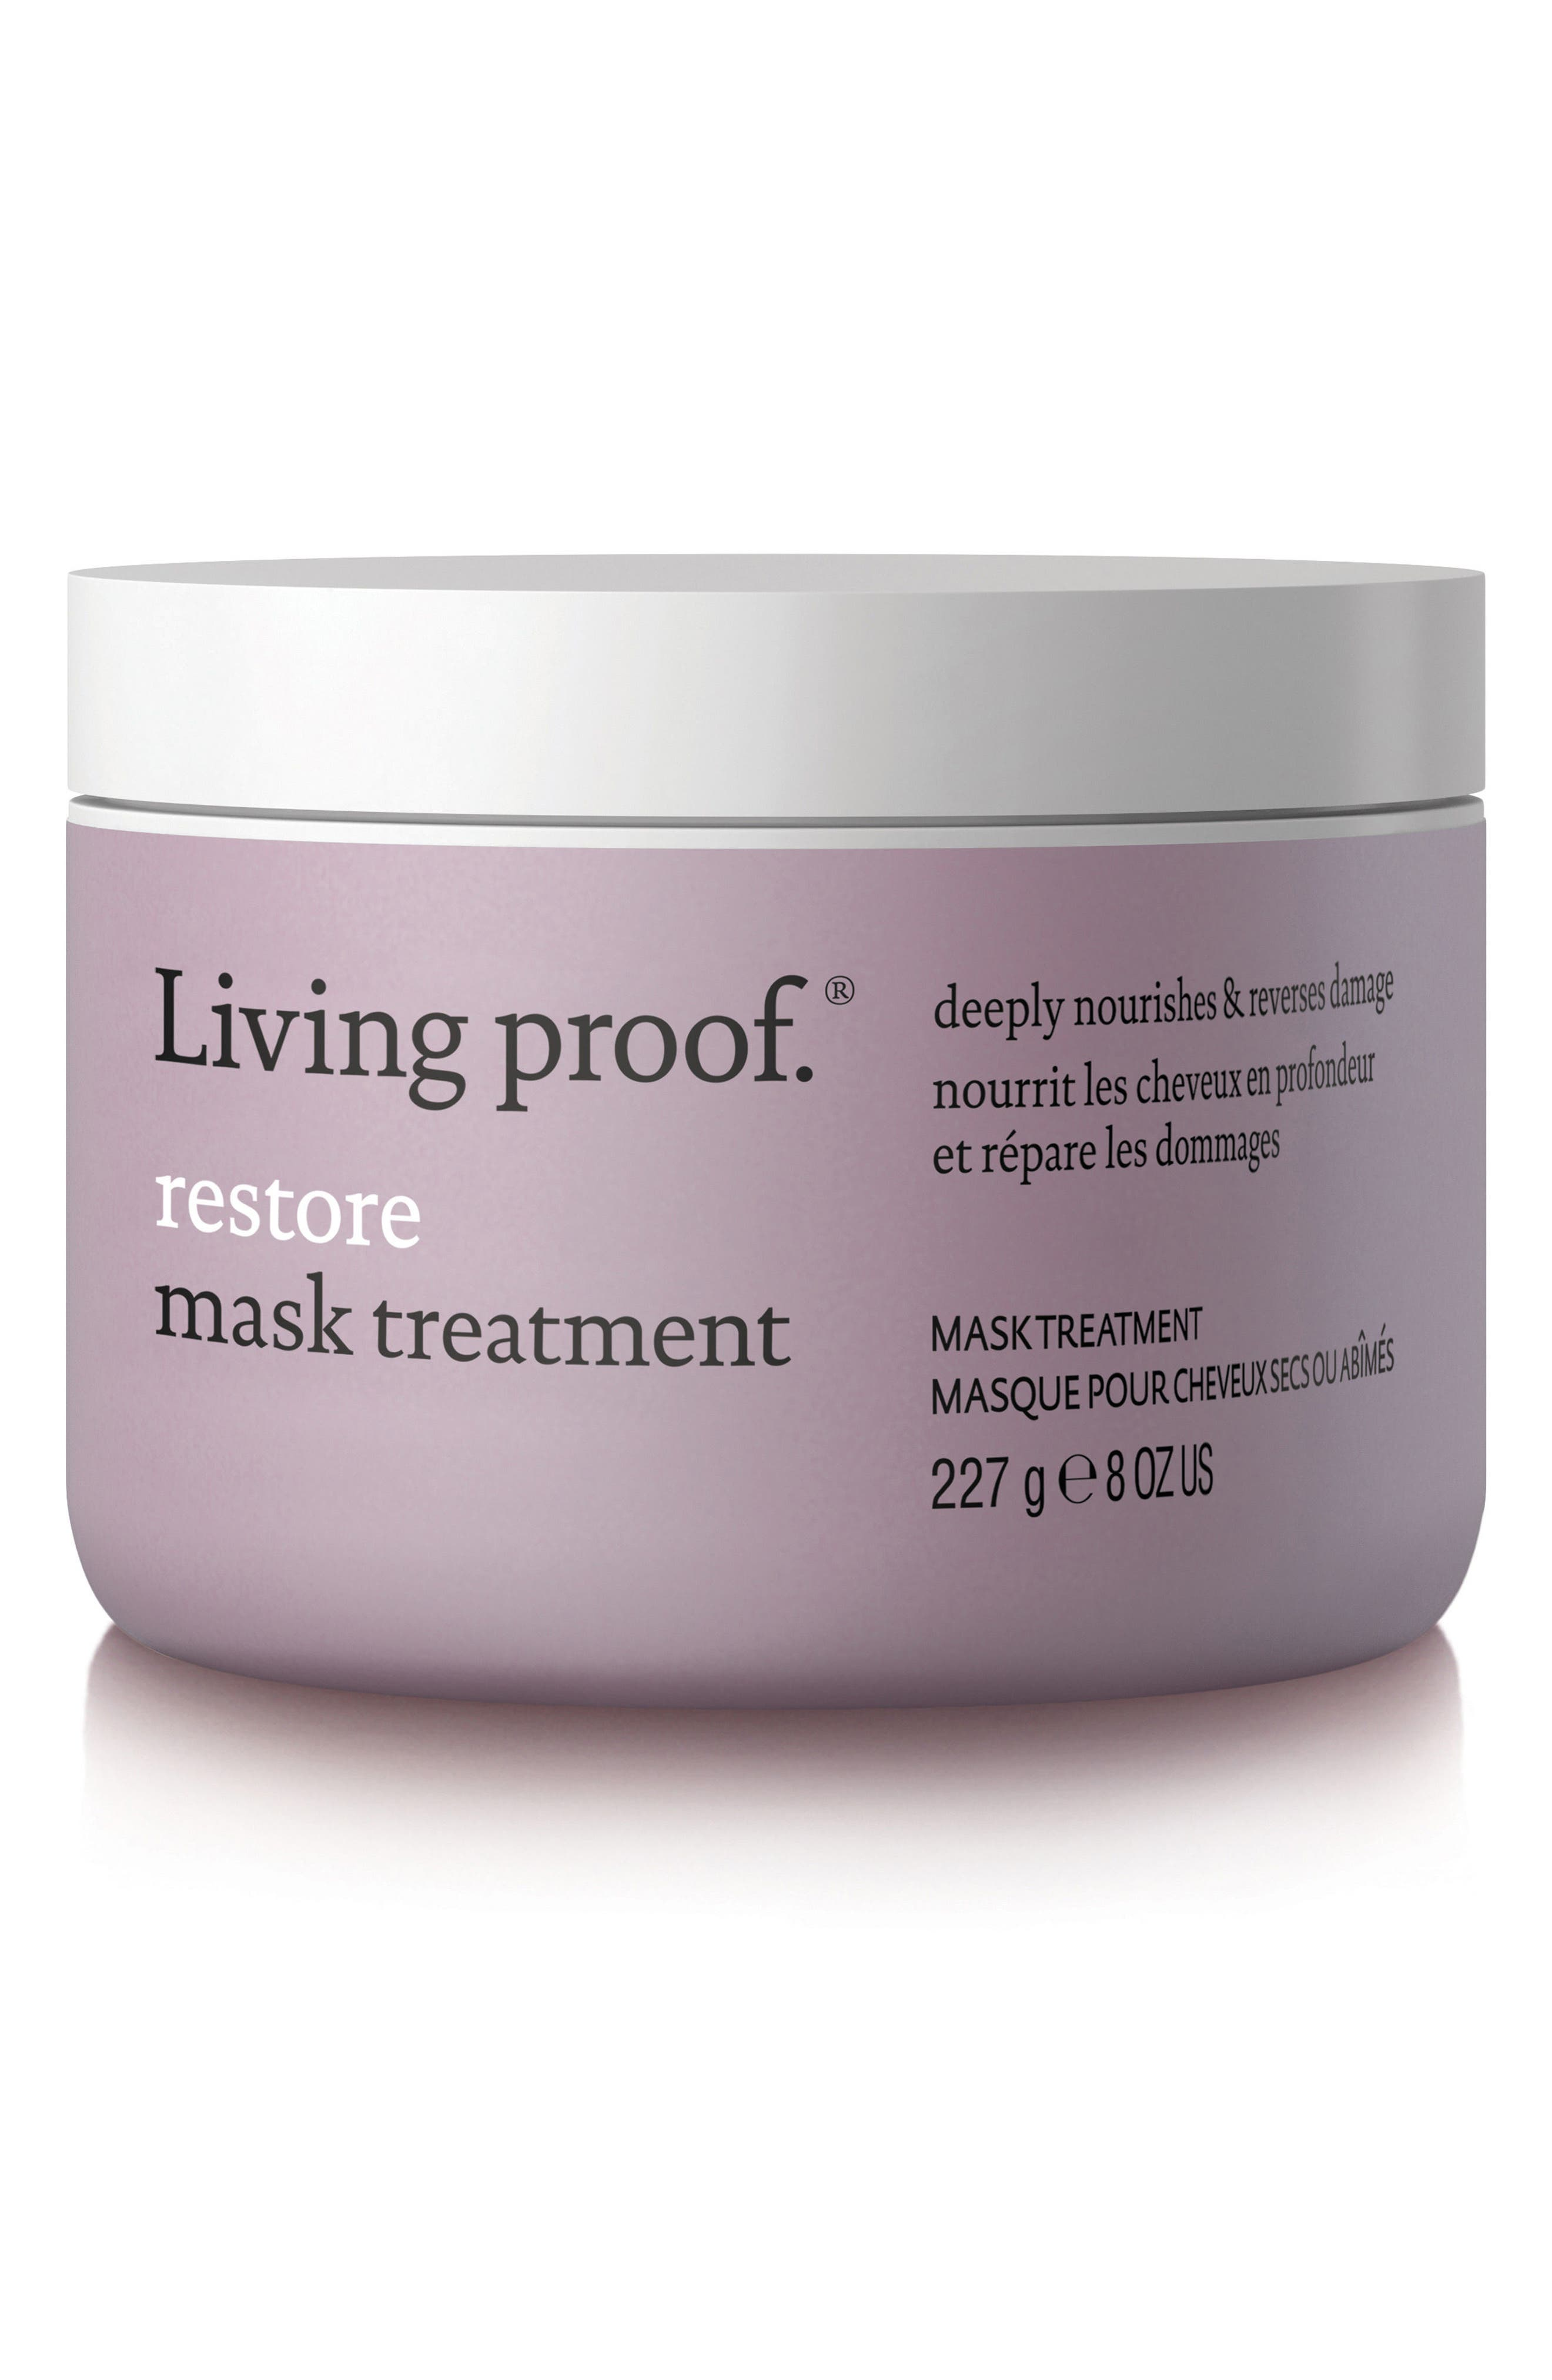 Alternate Image 1 Selected - Living proof® Restore Mask Treatment